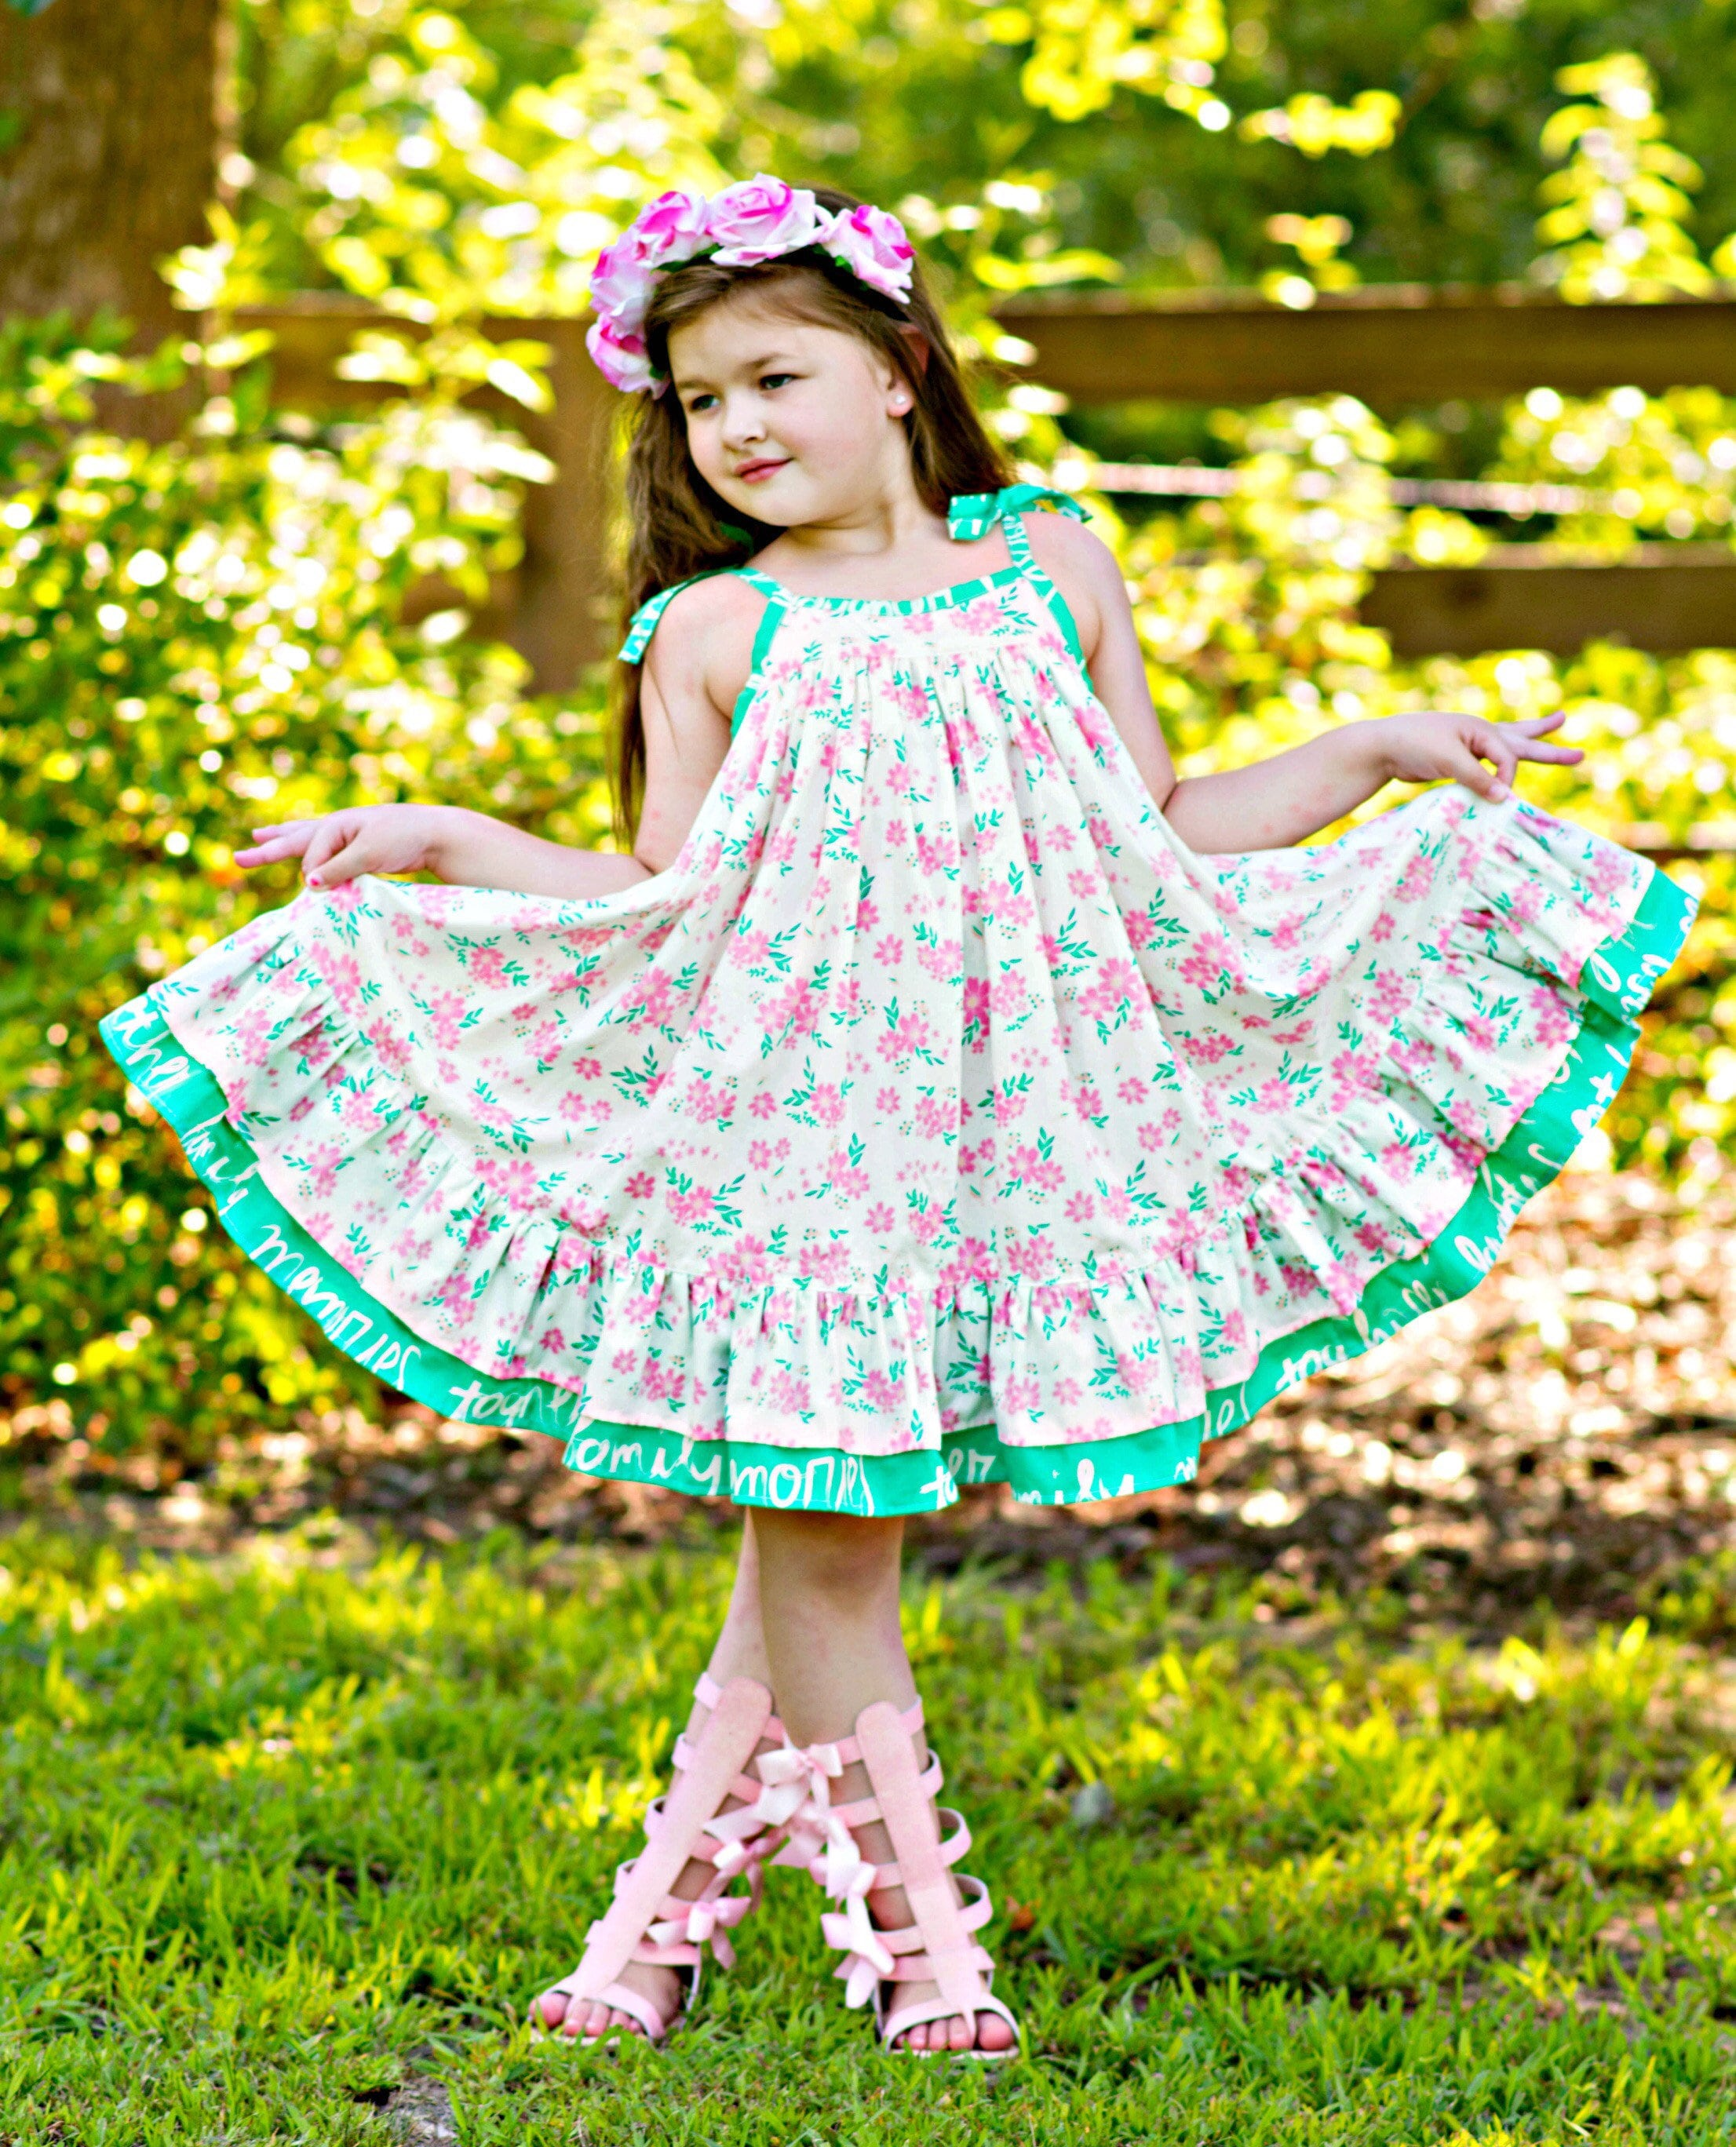 Girls twirl dress dance dress floral dress spring summer etsy jpg 2212x2736  Spring church party 6e66003dfaf0